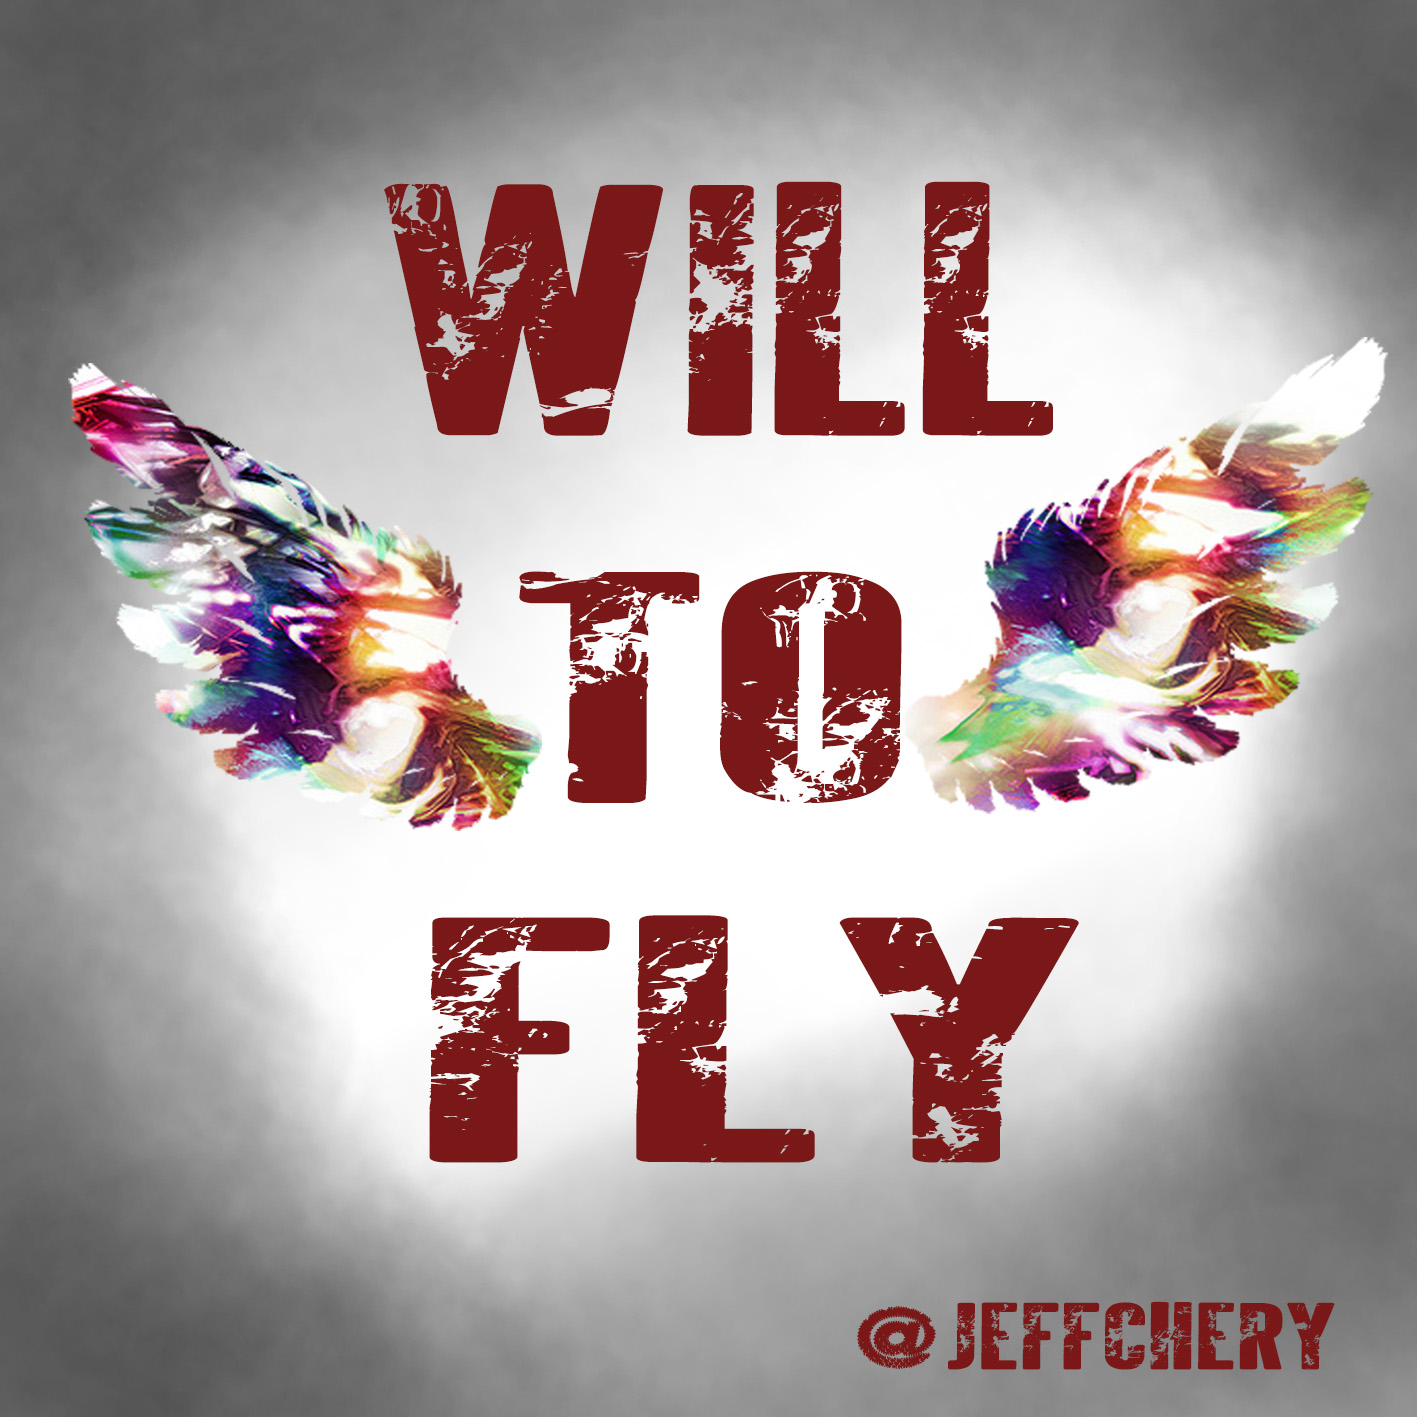 Jeff Chery - Will to Fly [audio]